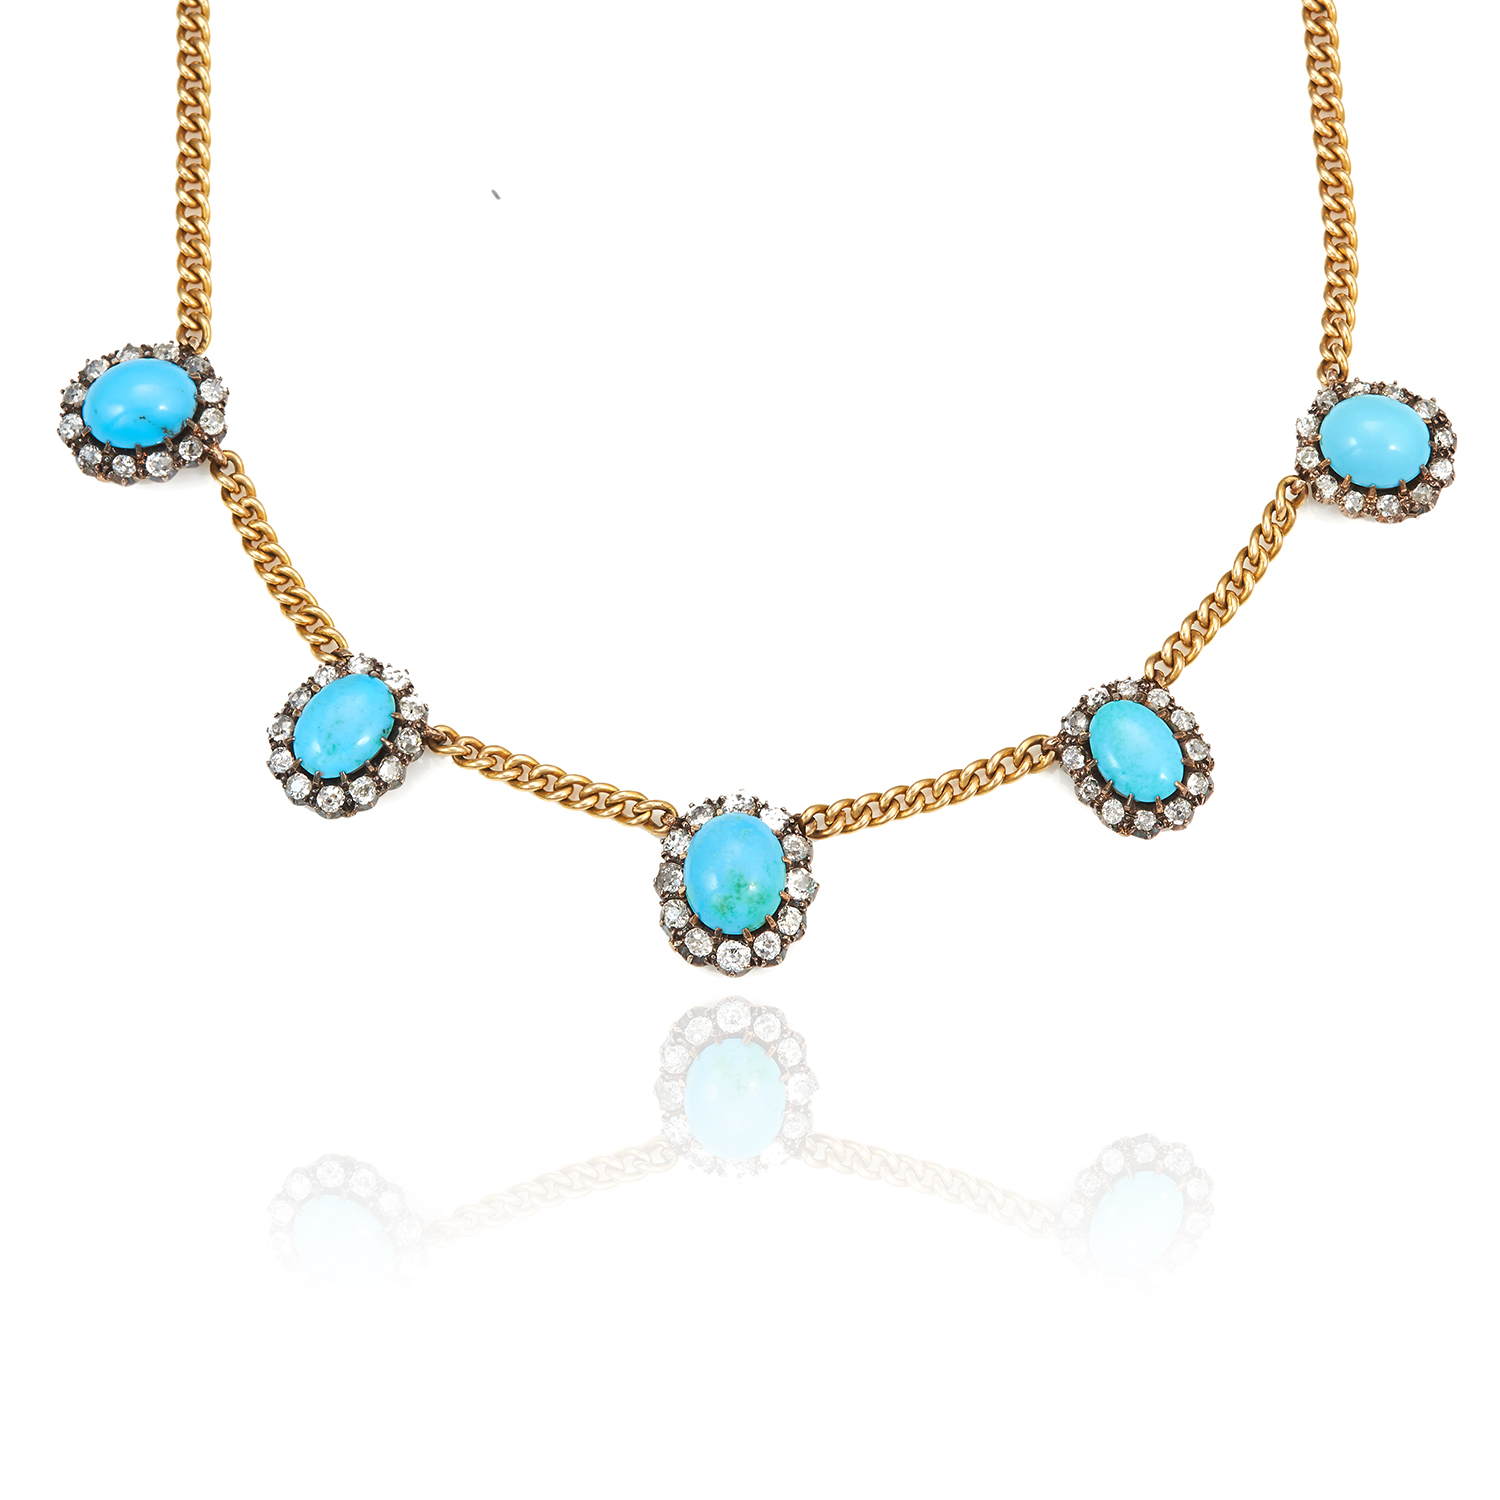 Los 39 - AN ANTIQUE TURQUOISE AND DIAMOND NECKLACE in 18ct yellow gold and silver, the curb link necklace